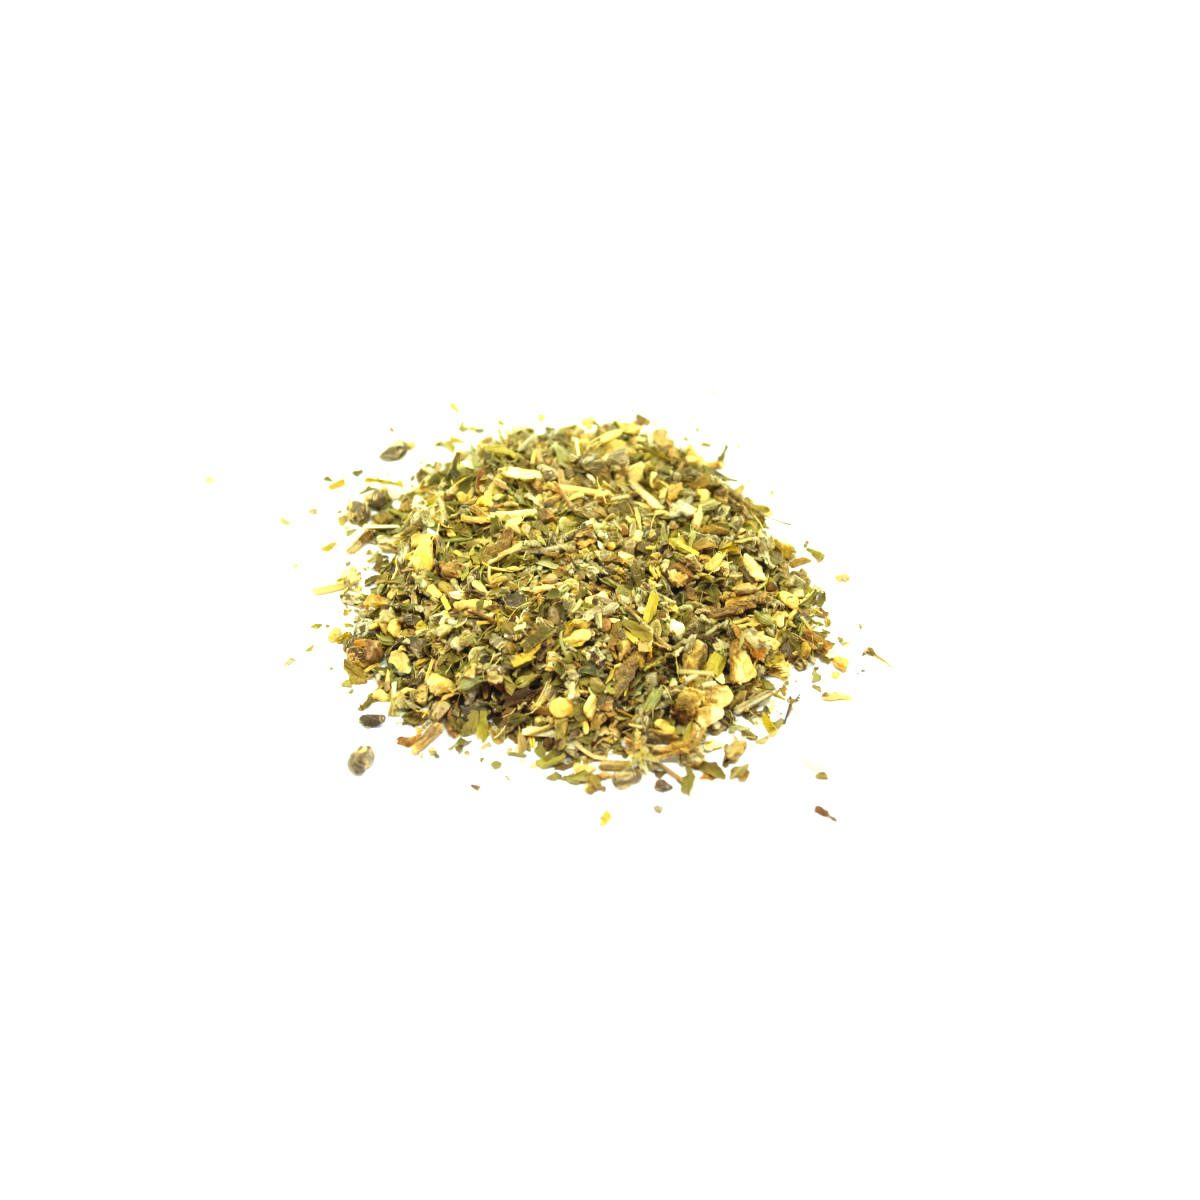 Fertility Self Help Tea These herbs helps with getting your system back to a natural balance allowing the ability of conception to work for your body.